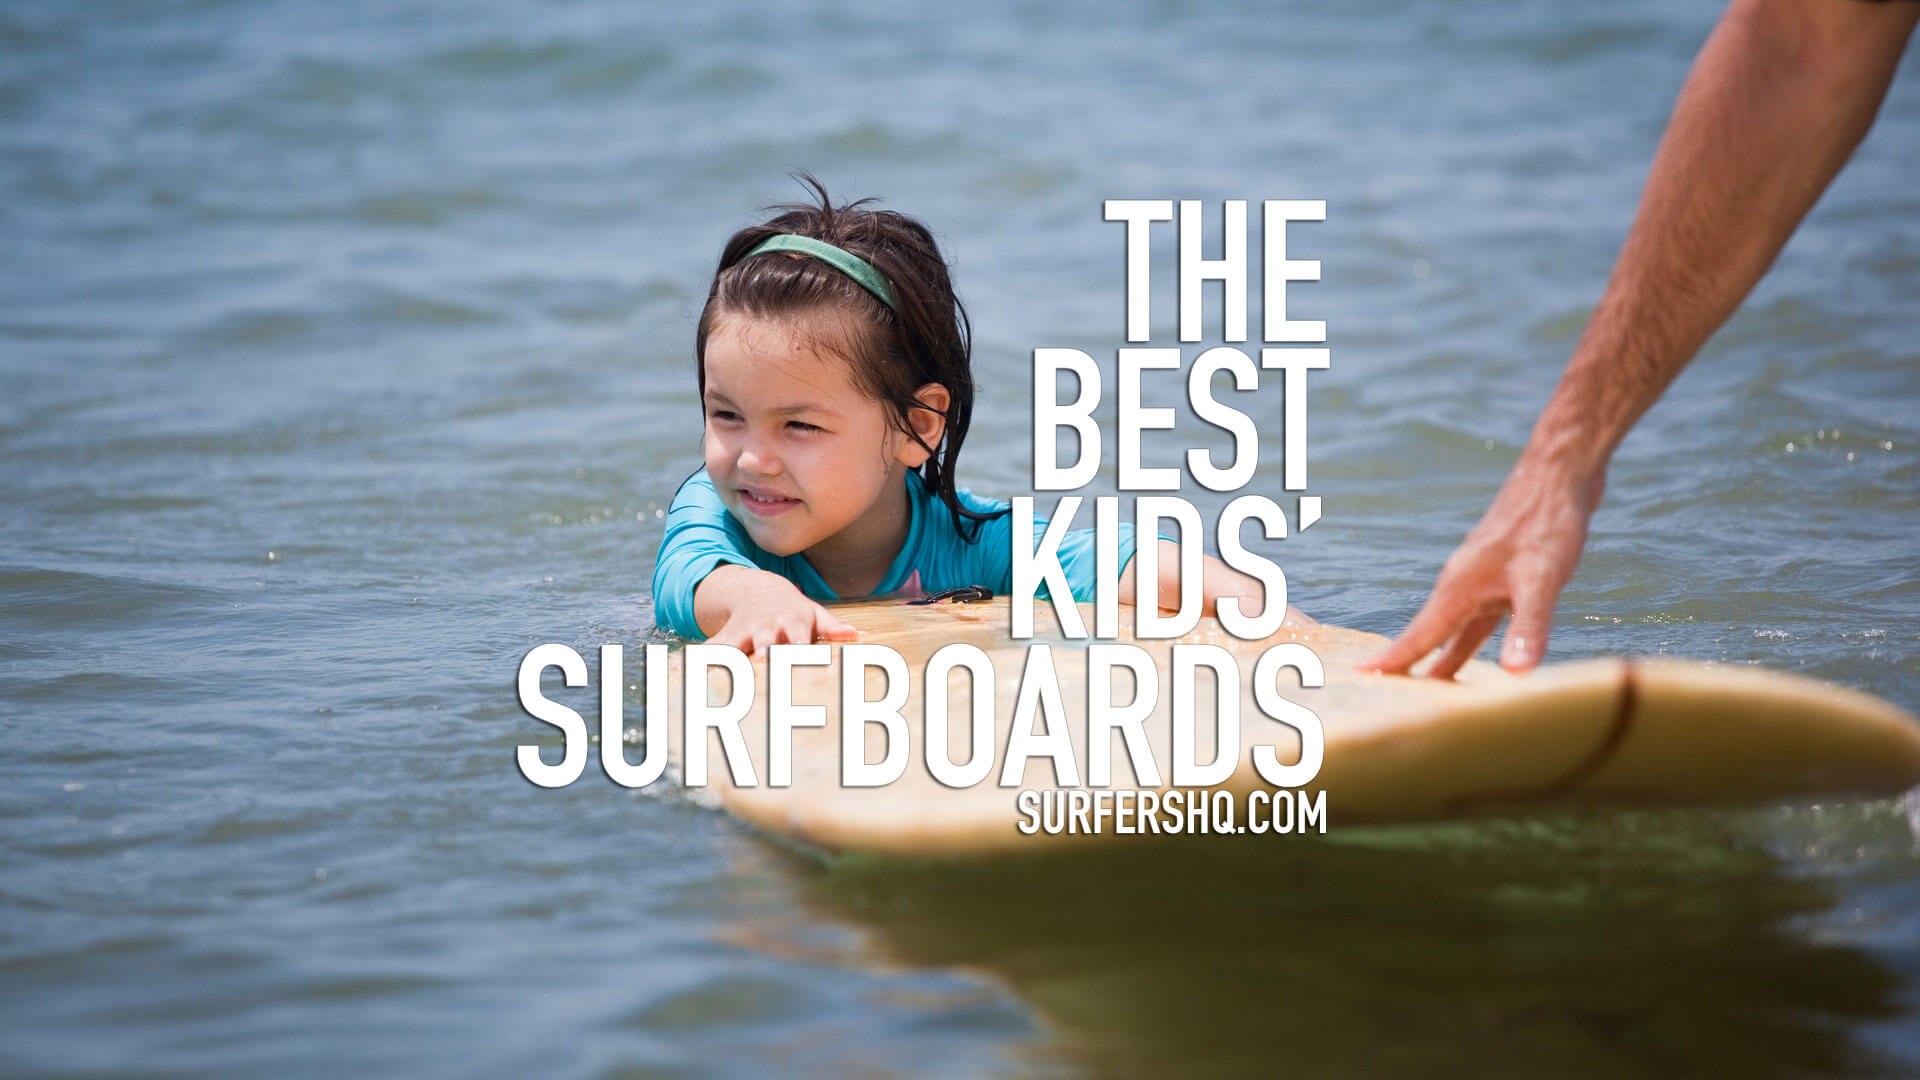 Best wake surf board for kids? - Boat Discussion - MB Boat ...